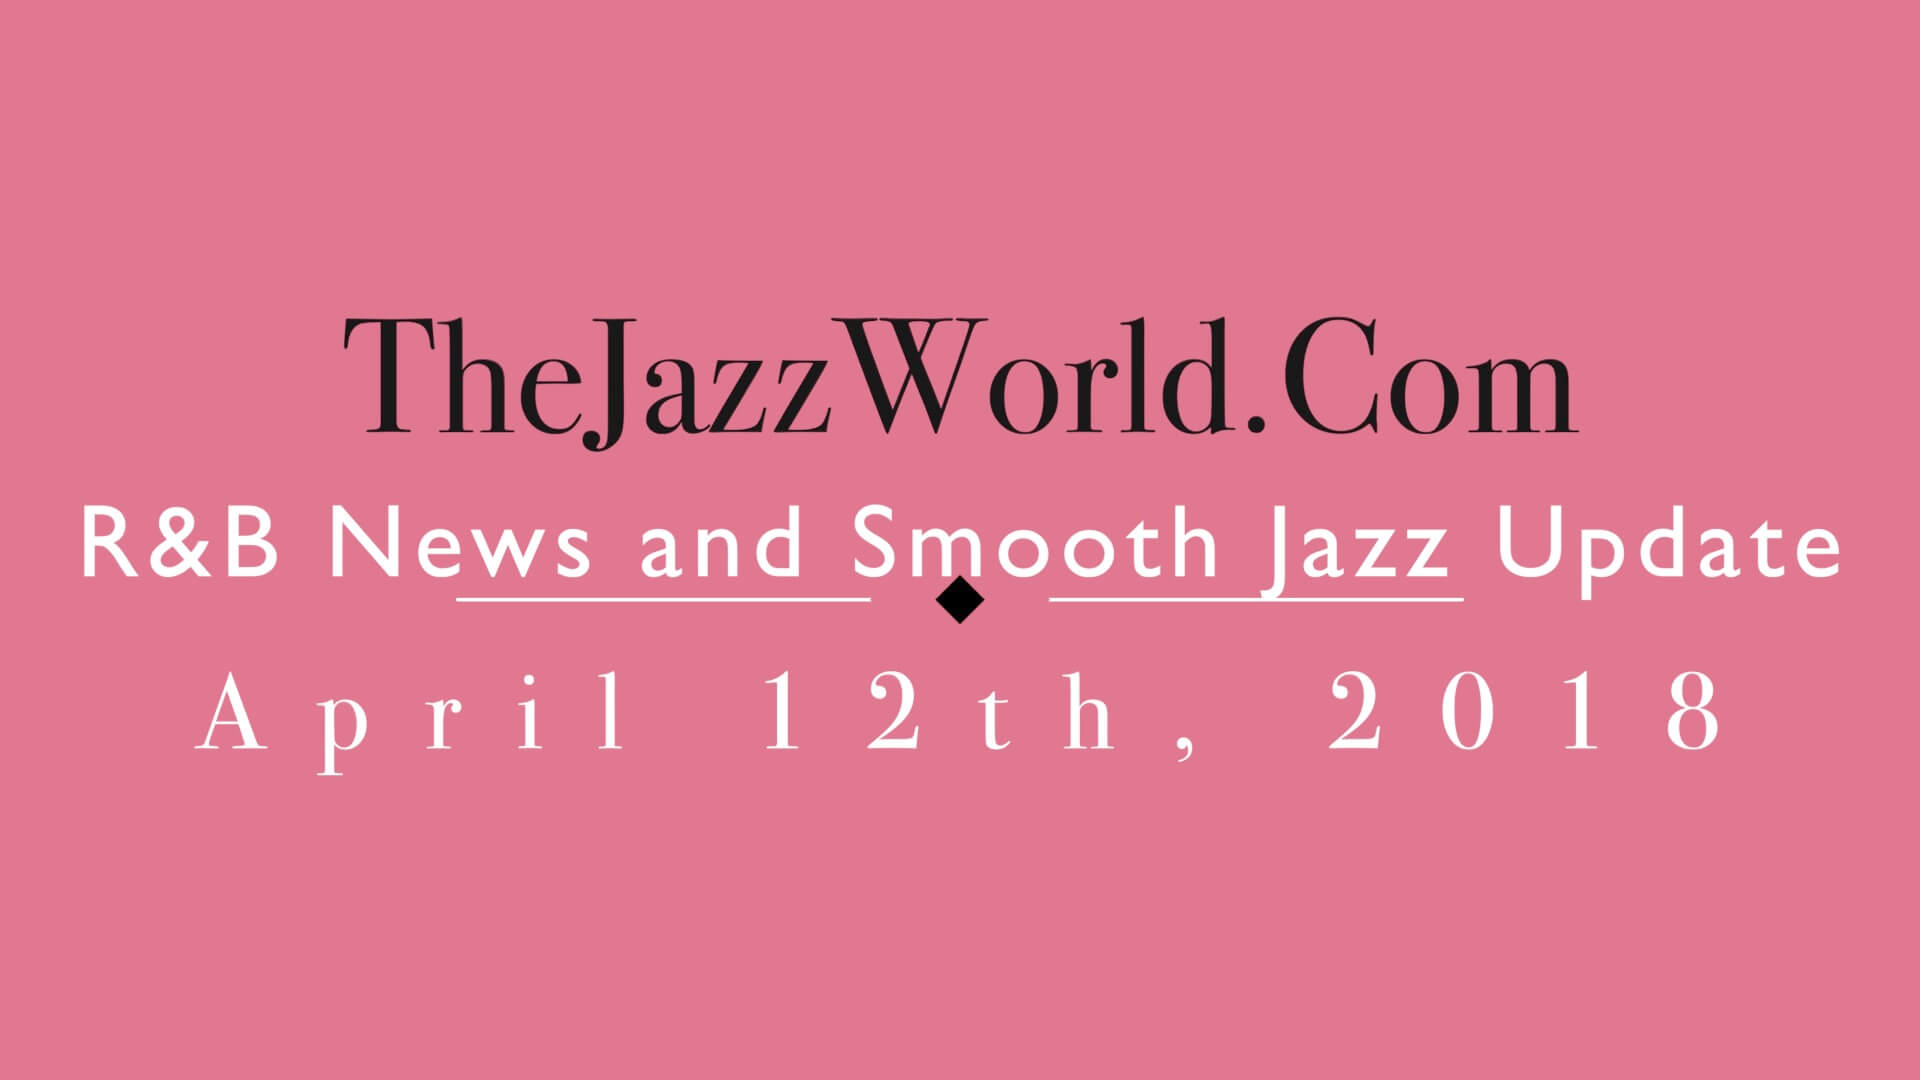 Latest R&B News and Smooth Jazz Update April 12th